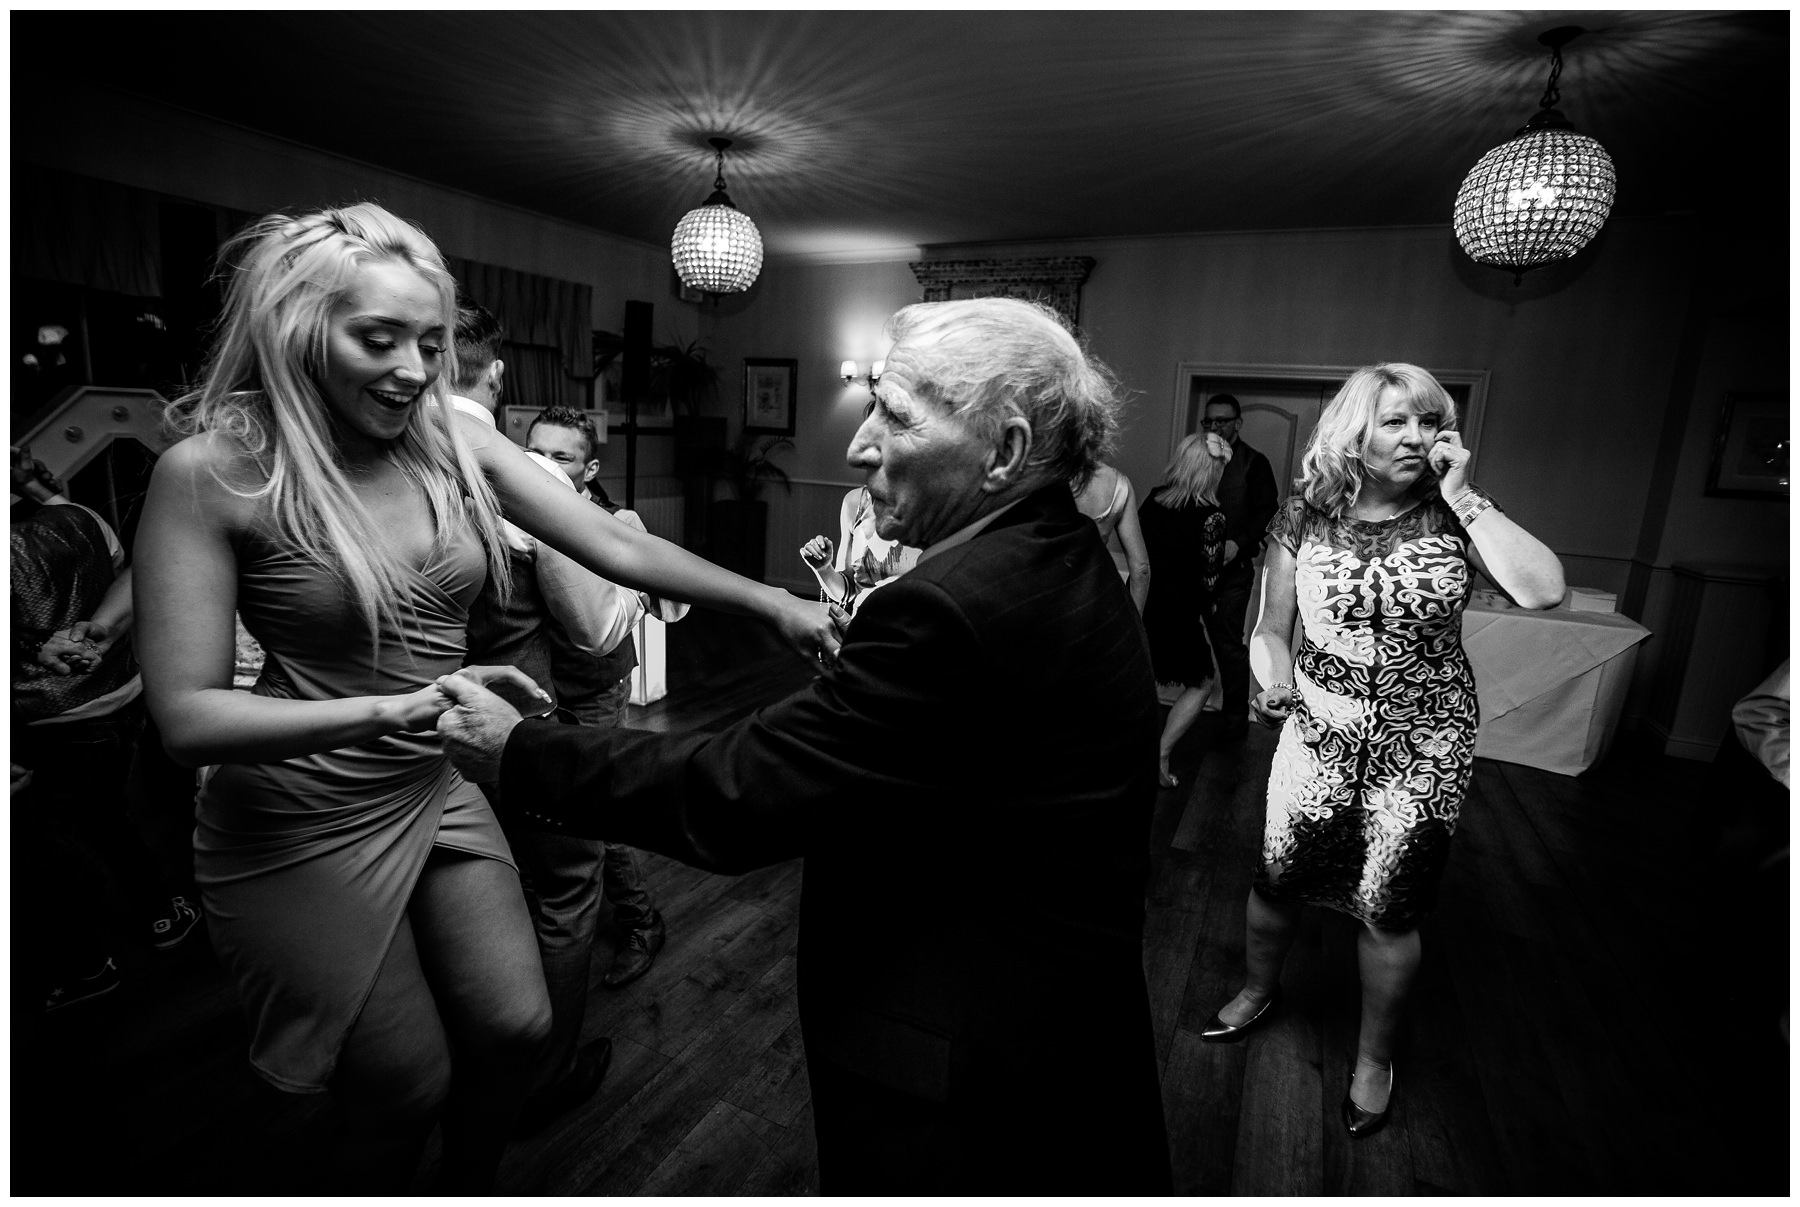 young girl dances with older man